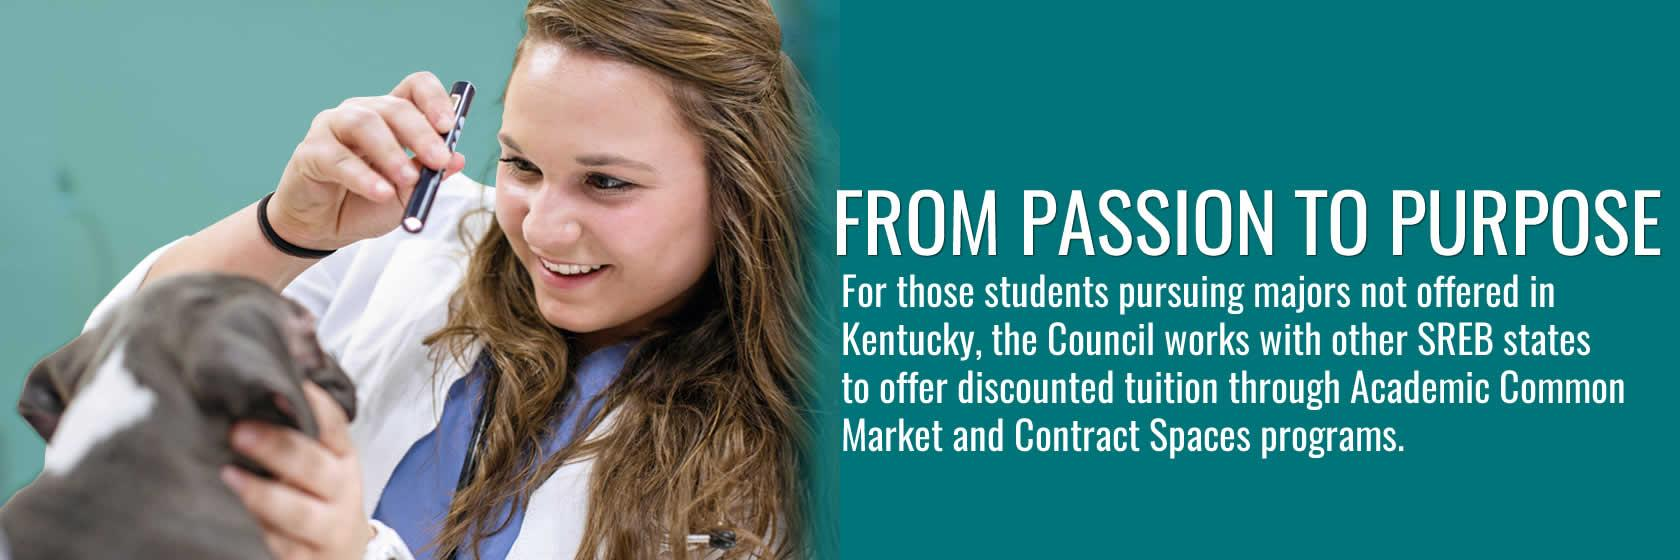 Learn about discounted tuition programs for degrees offered outside Kentucky.